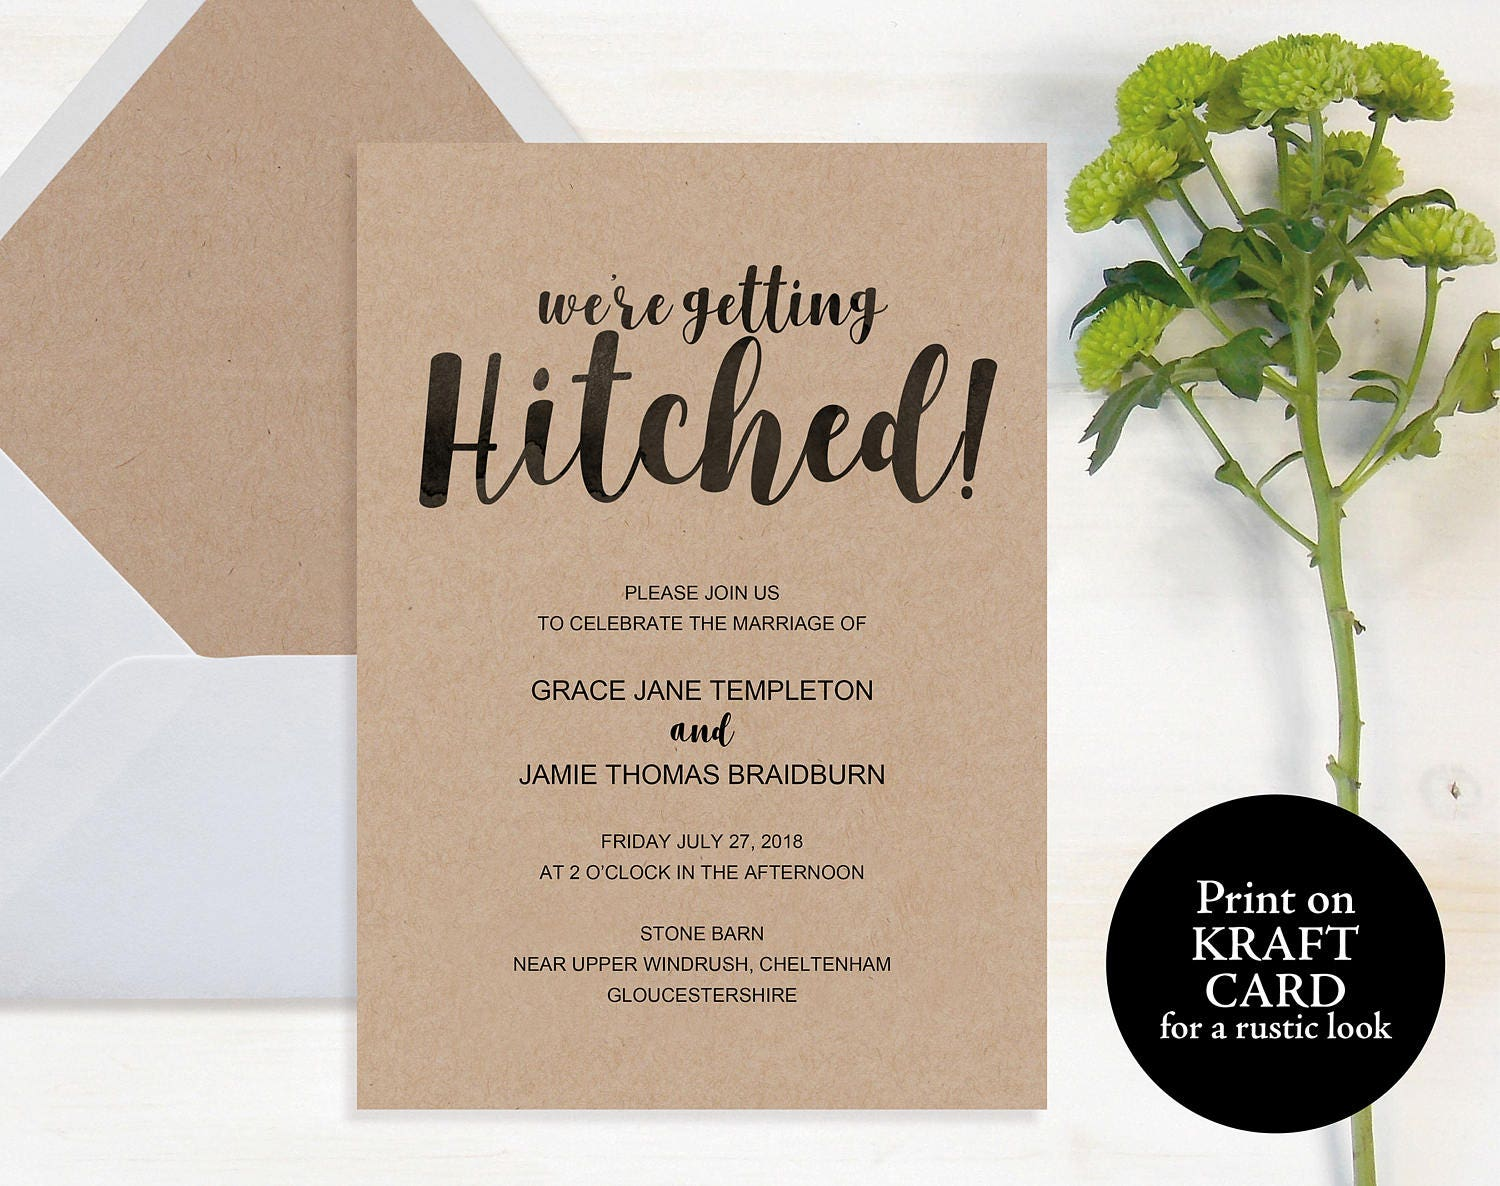 Hitched Wedding Invitations: Rustic Wedding Invitation Template Getting Hitched Printable